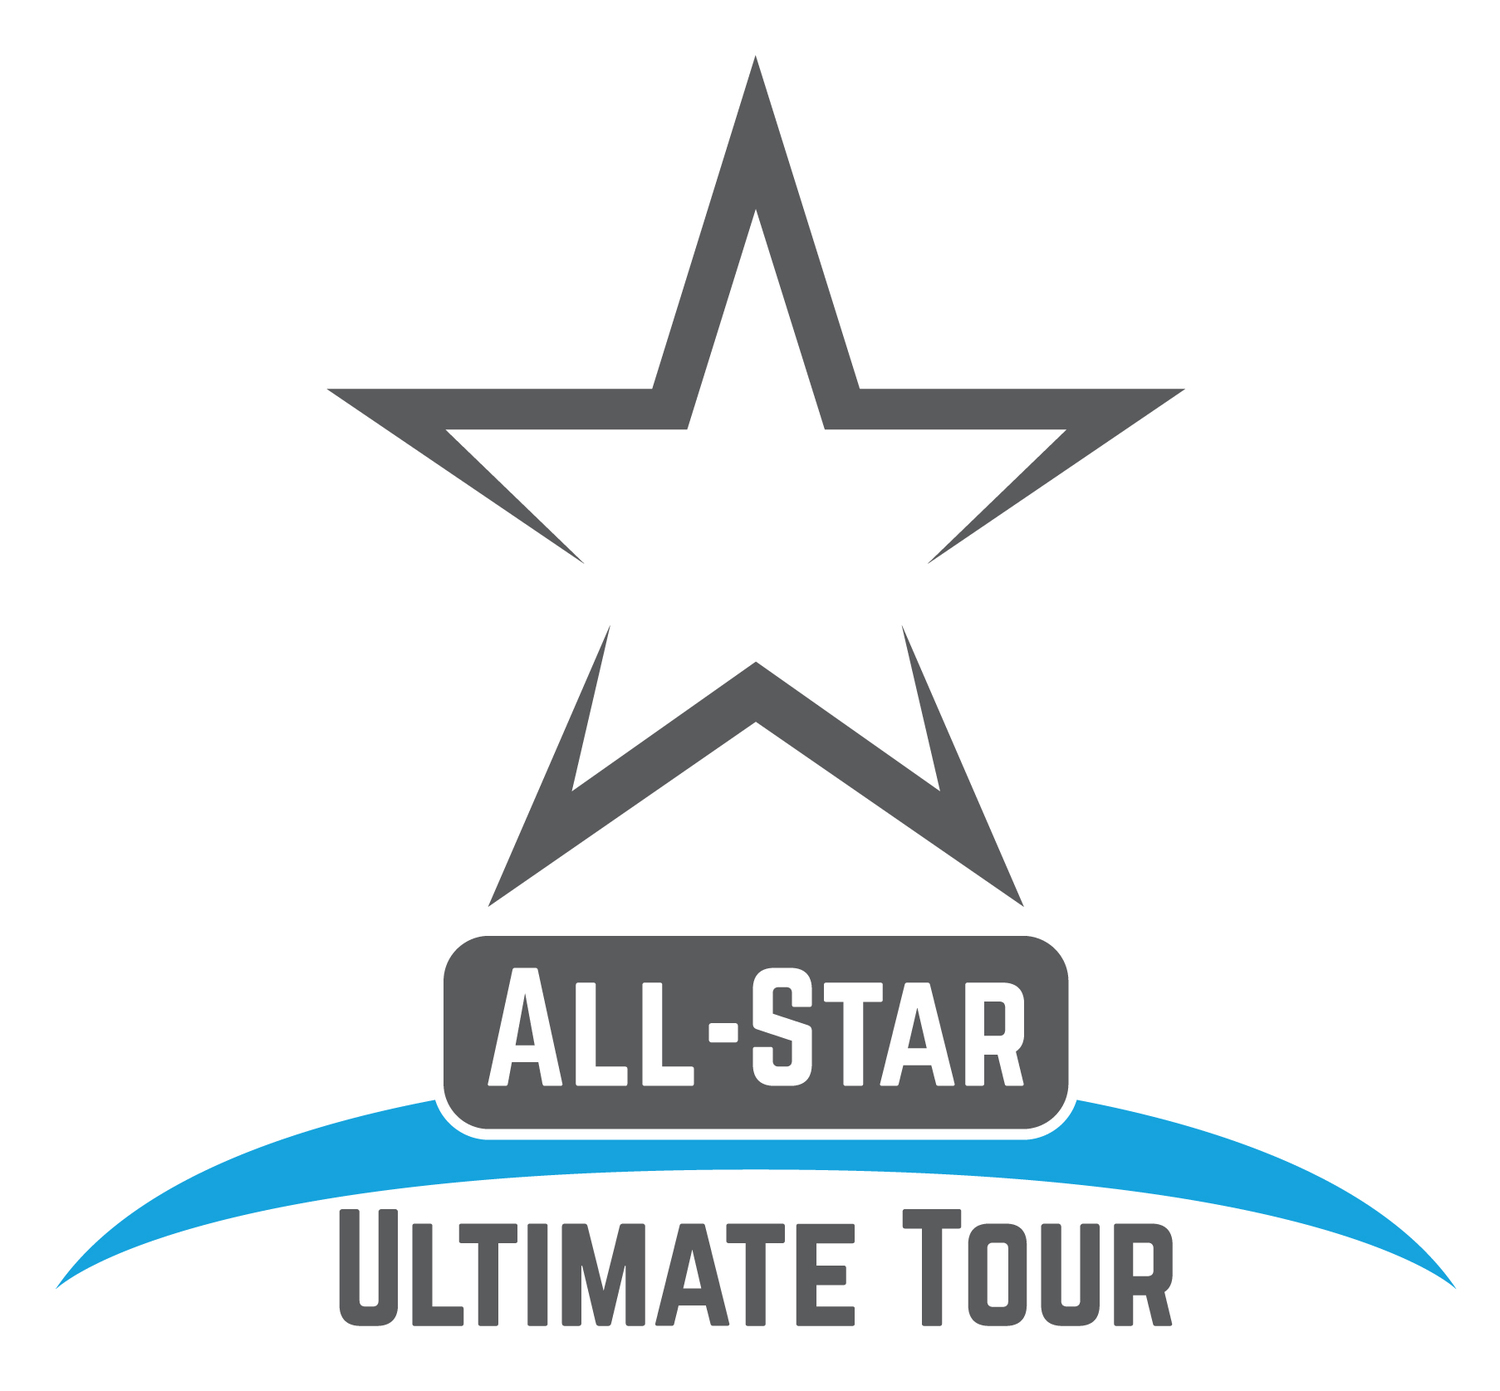 All-Star Ultimate Tour